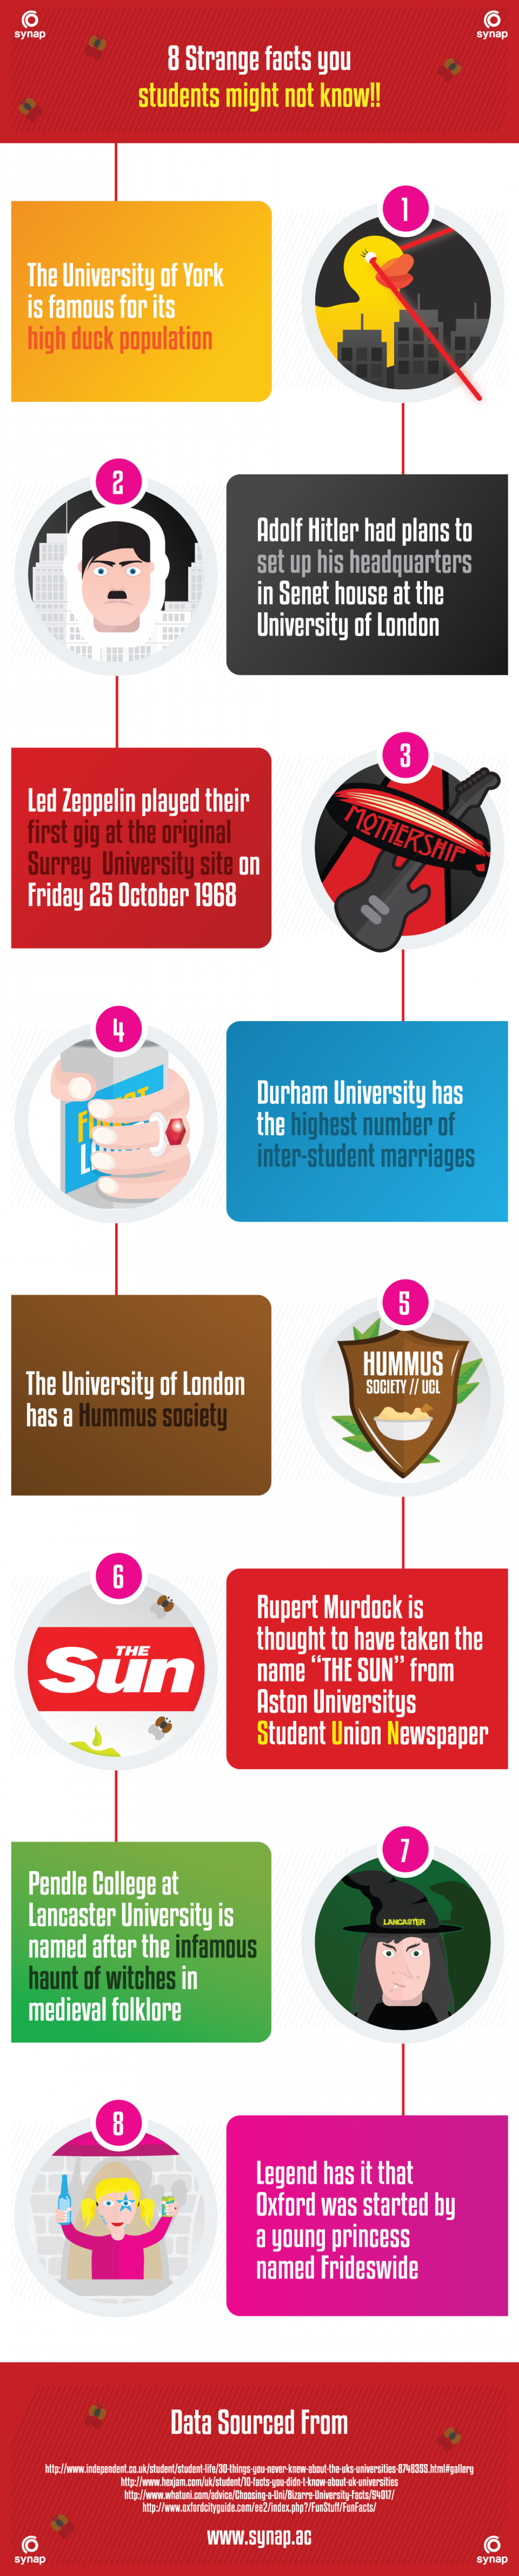 8 Strange University Facts You Students Might Not Know! Infographic